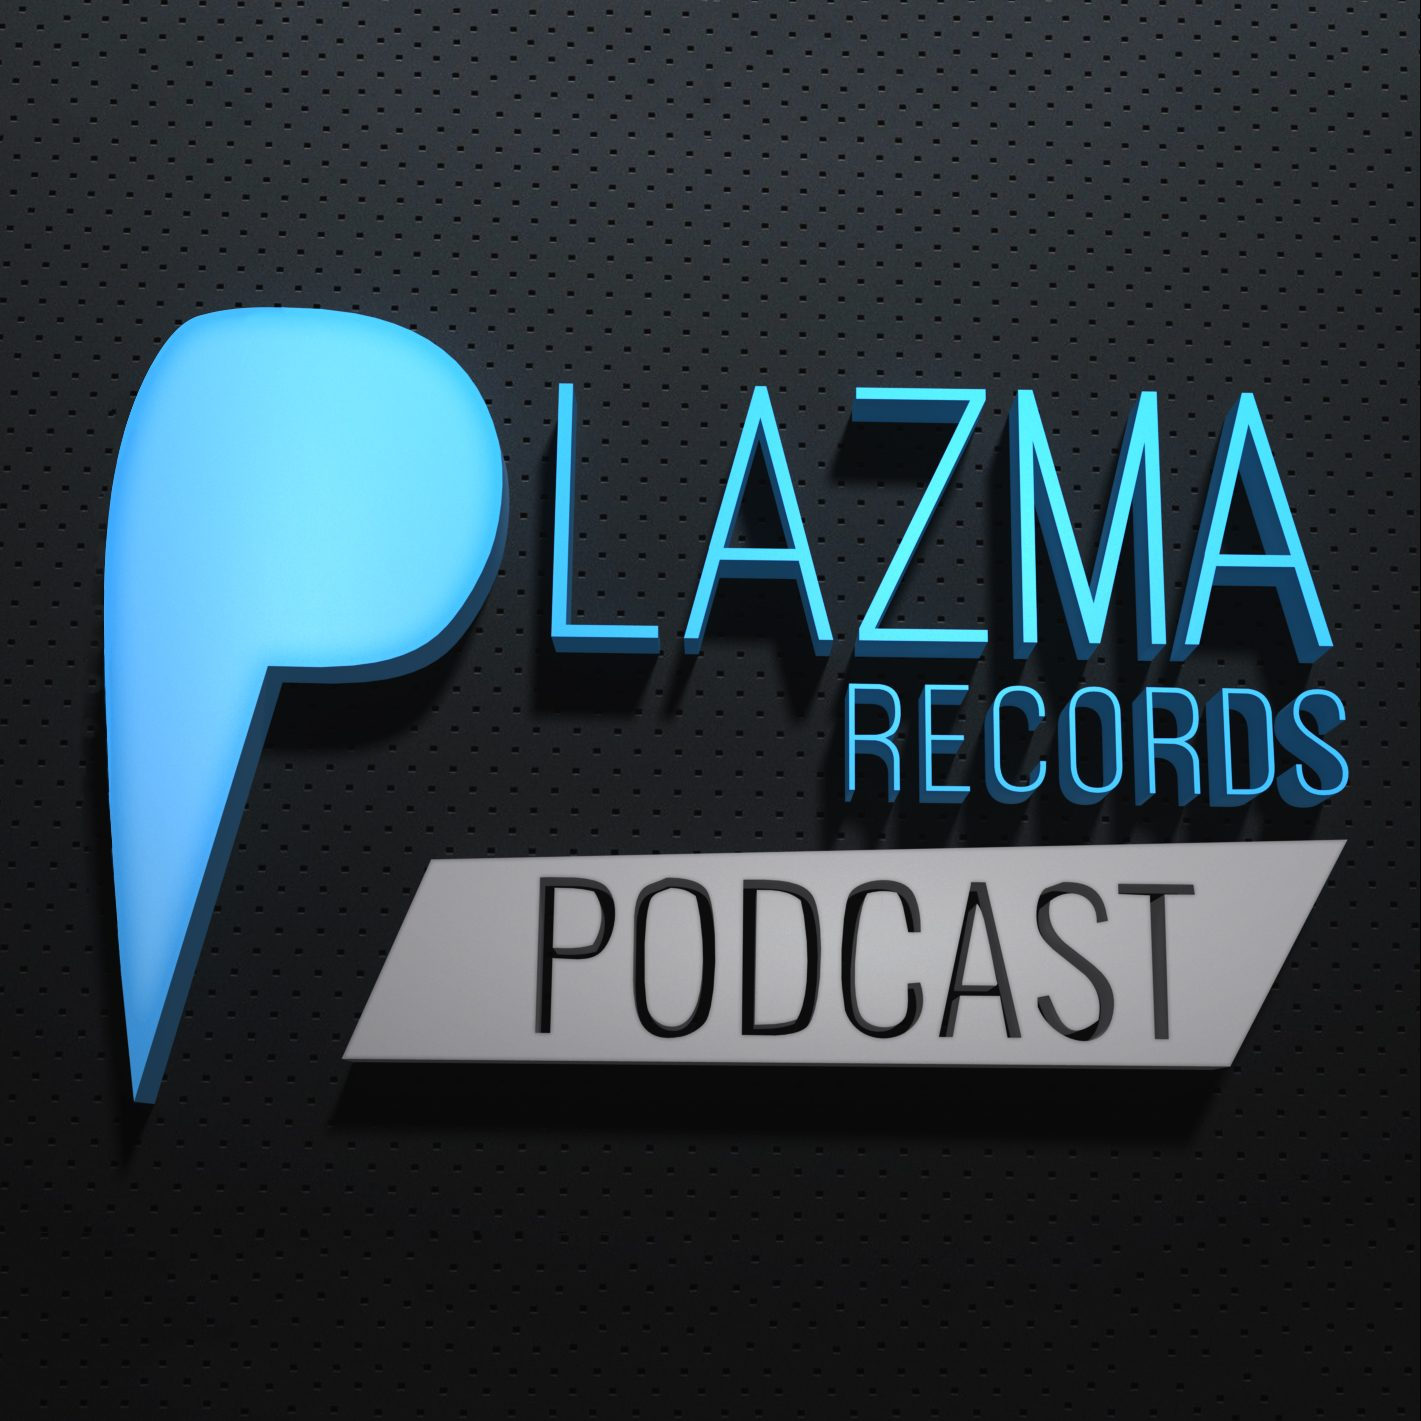 Covert artwork with 3D text effect for Plazma Records | IKOMS. Graphic design